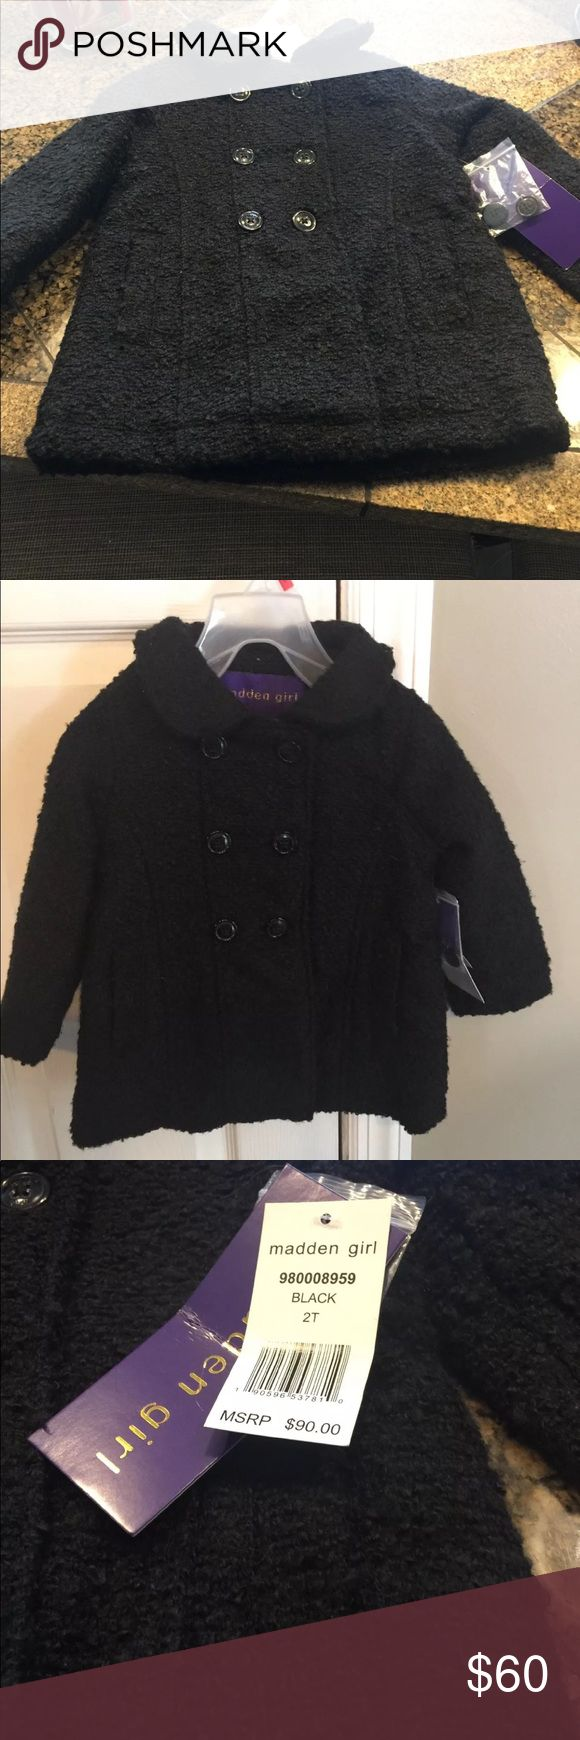 Steve Madden Madden Girl 2T peacoat NWT Brand new with tags Madden girl Peacoat. Lined. Has pockets. Adorable Madden Girl Jackets & Coats Pea Coats